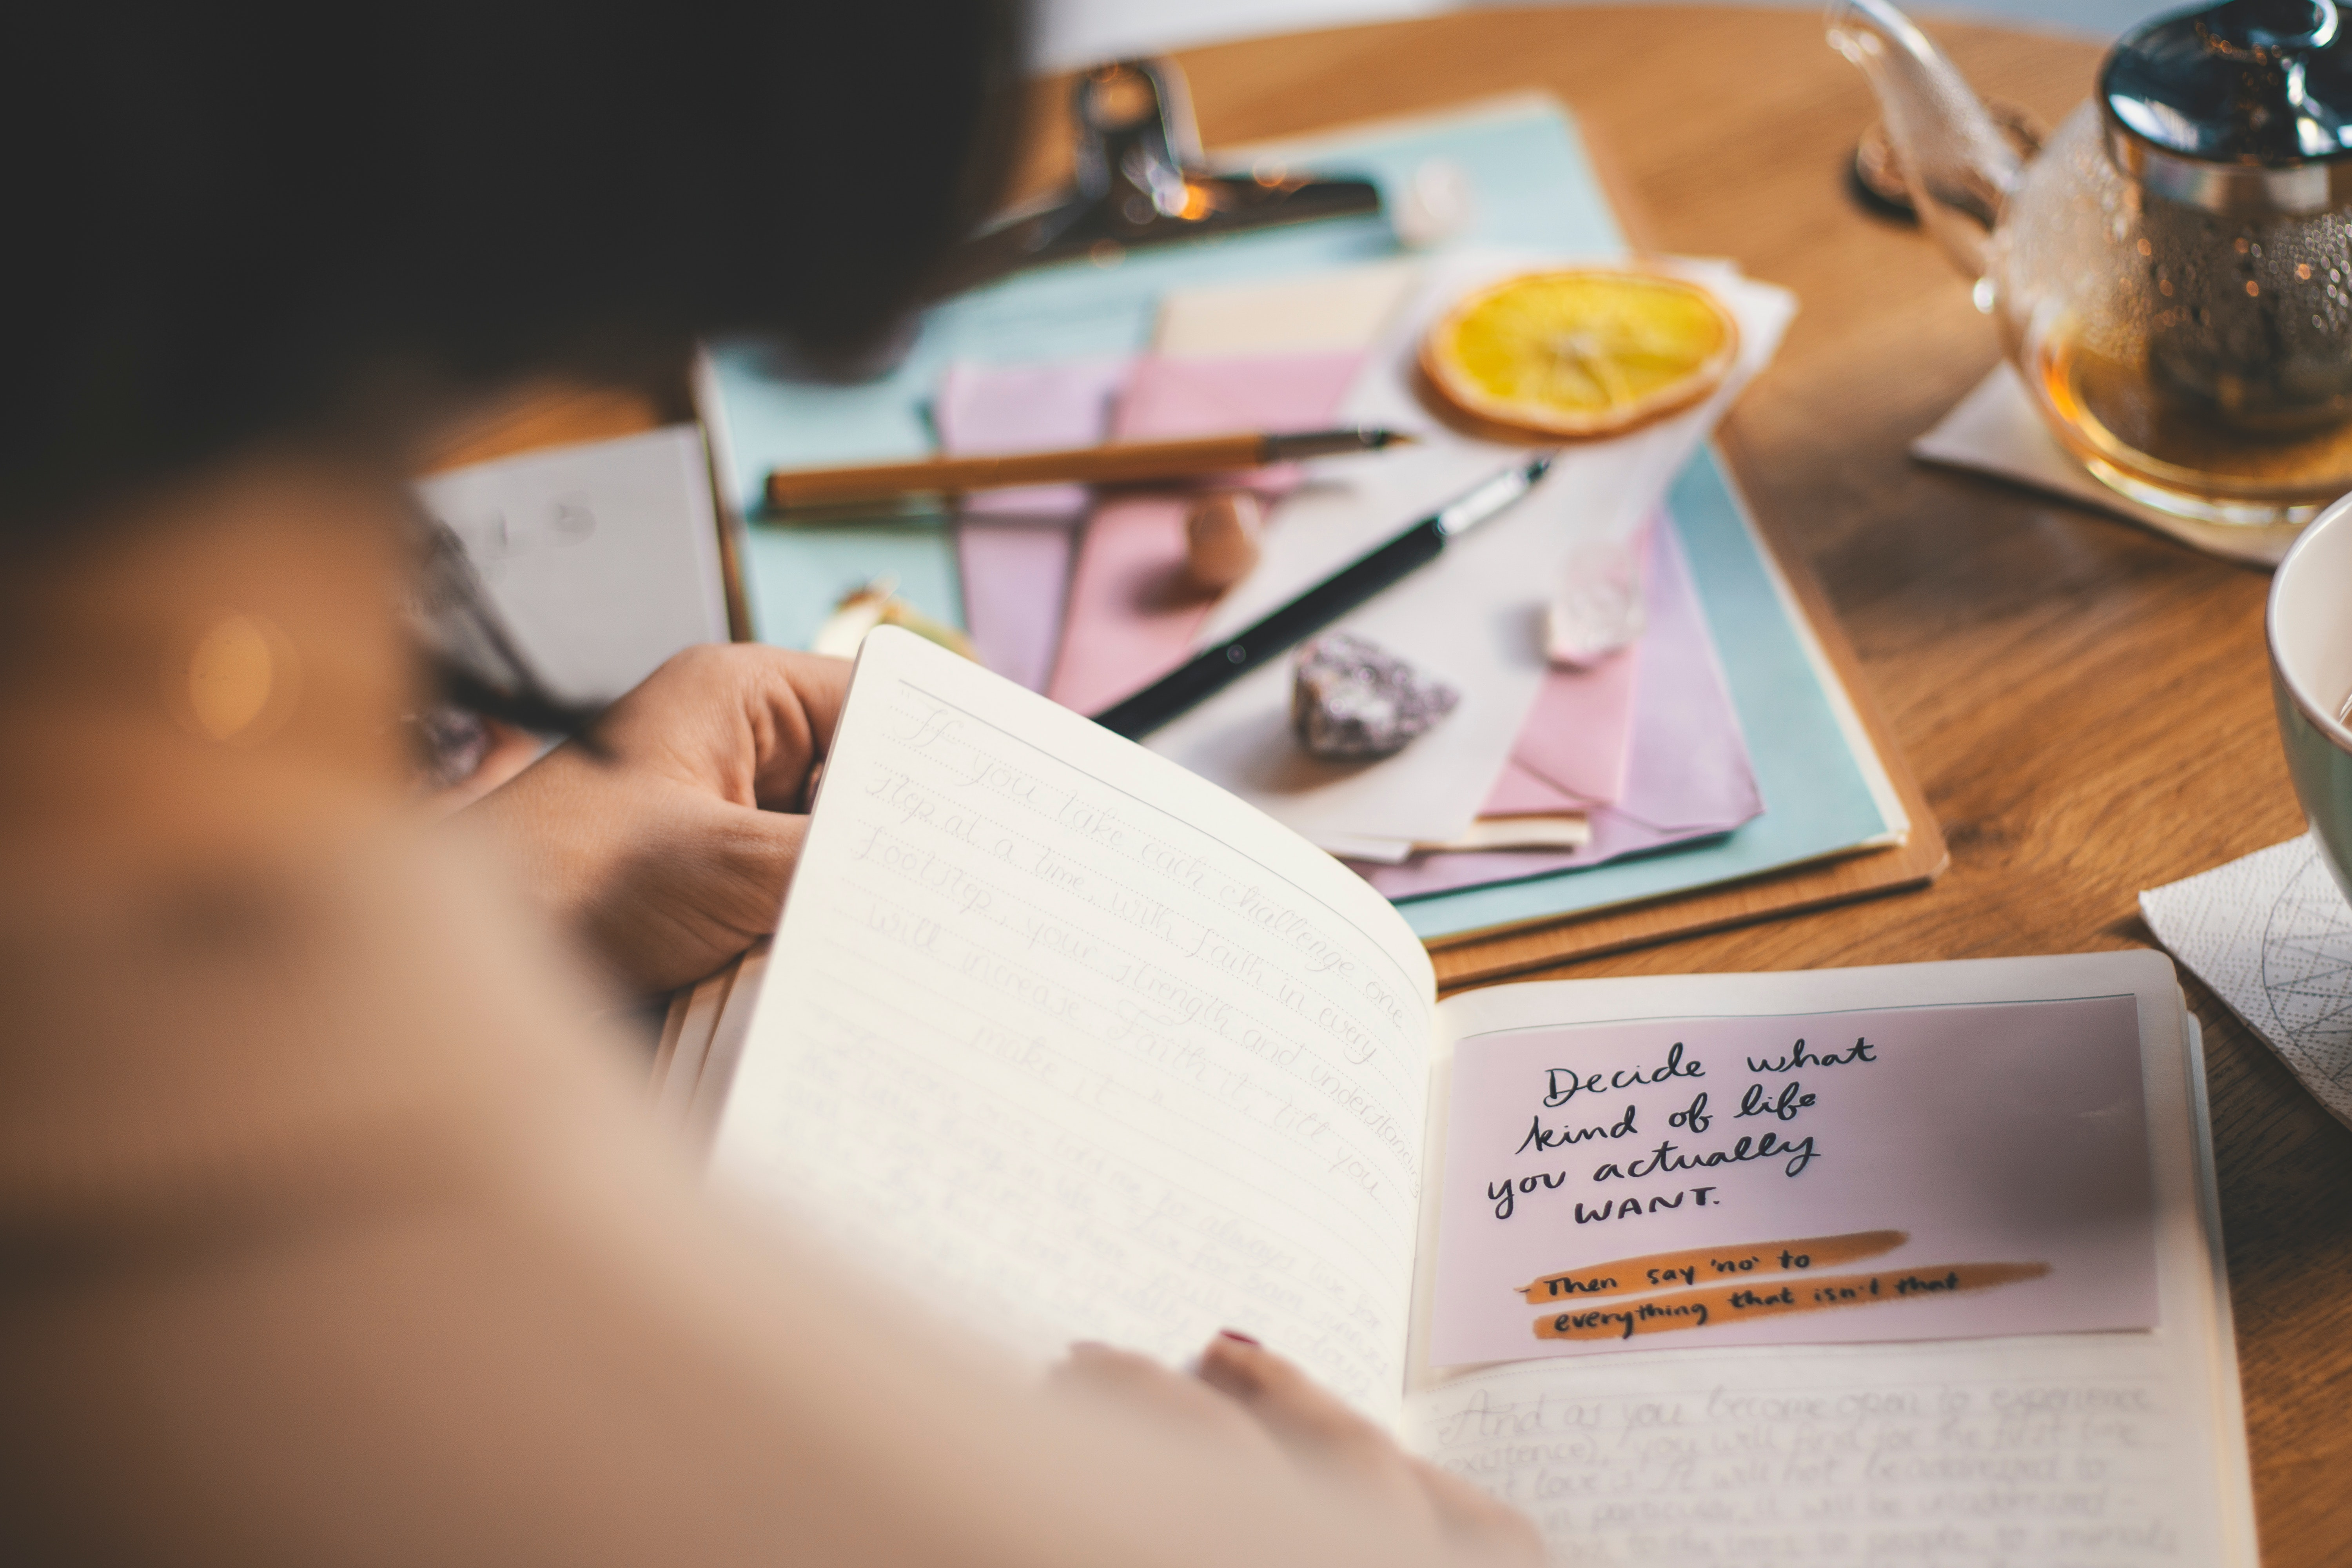 photo-of-person-holding-notebook-3363103